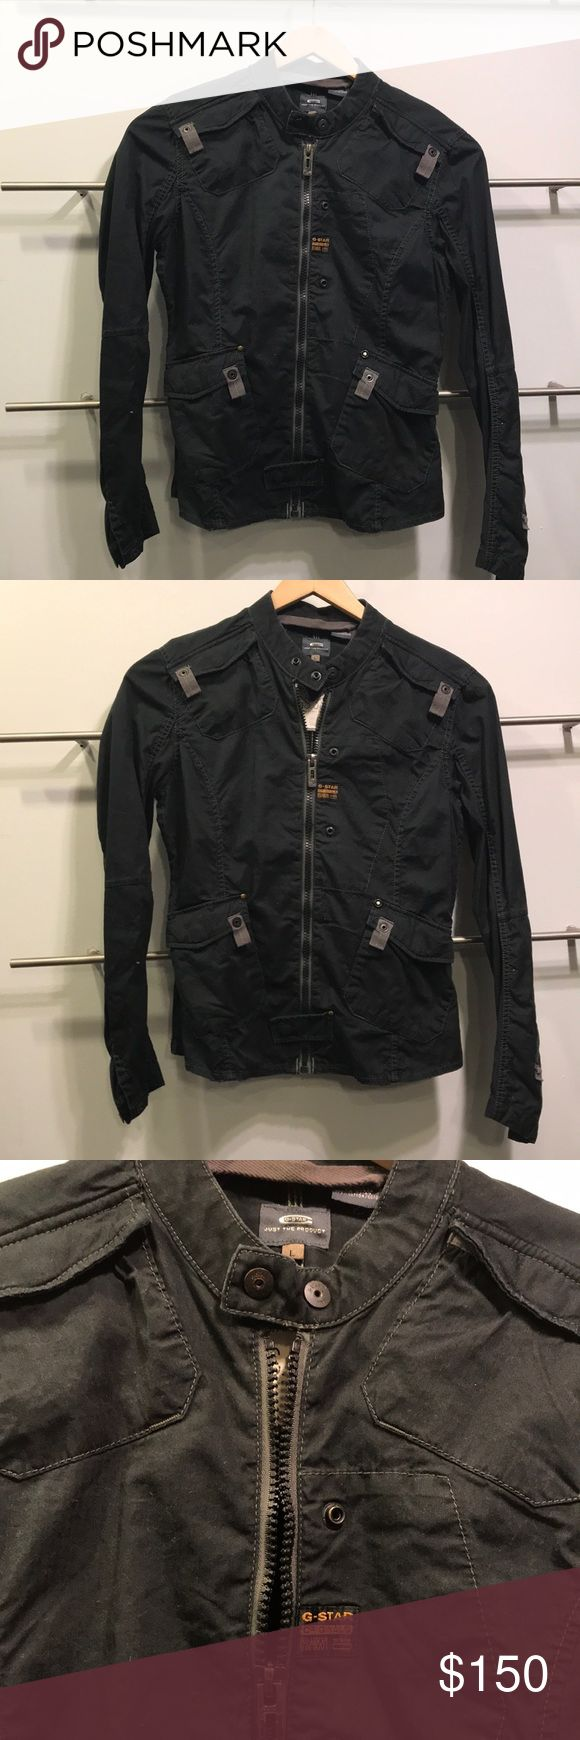 G STAR RAW MOTORCYCLE JACKET LARGE This is a amazing G STAR RAW ORIGINALS motorcycle jacket size large. It is 100% cotton. Black in color and has been used 3 Times. It has snaps all over to give it that motorcycle feel along with mandarin snap collar. G STAR RAW Jackets & Coats Utility Jackets